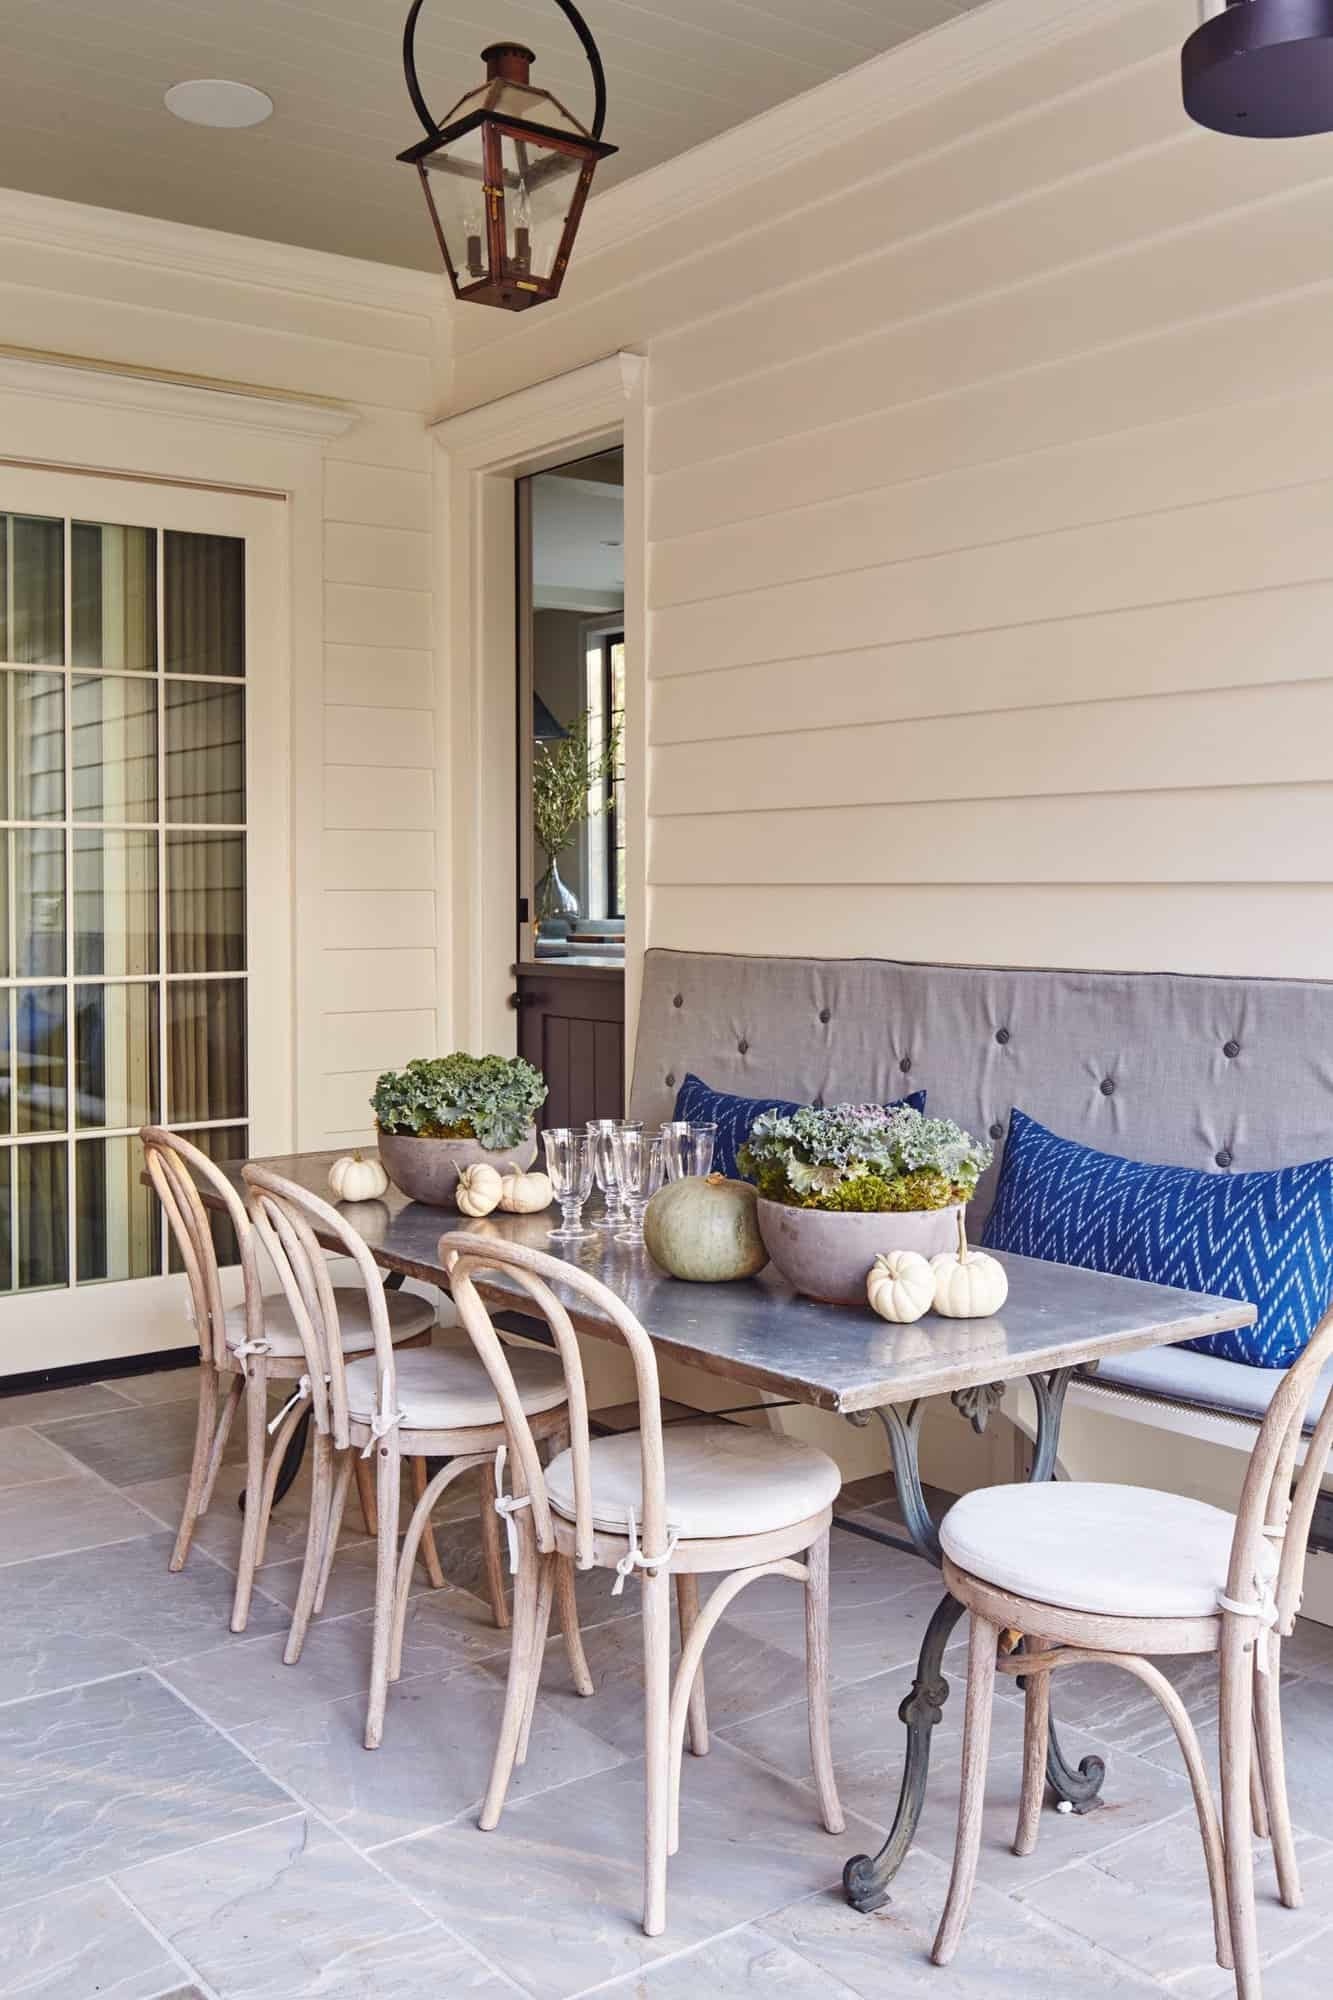 transitional-style-covered-porch-outdoor-dining